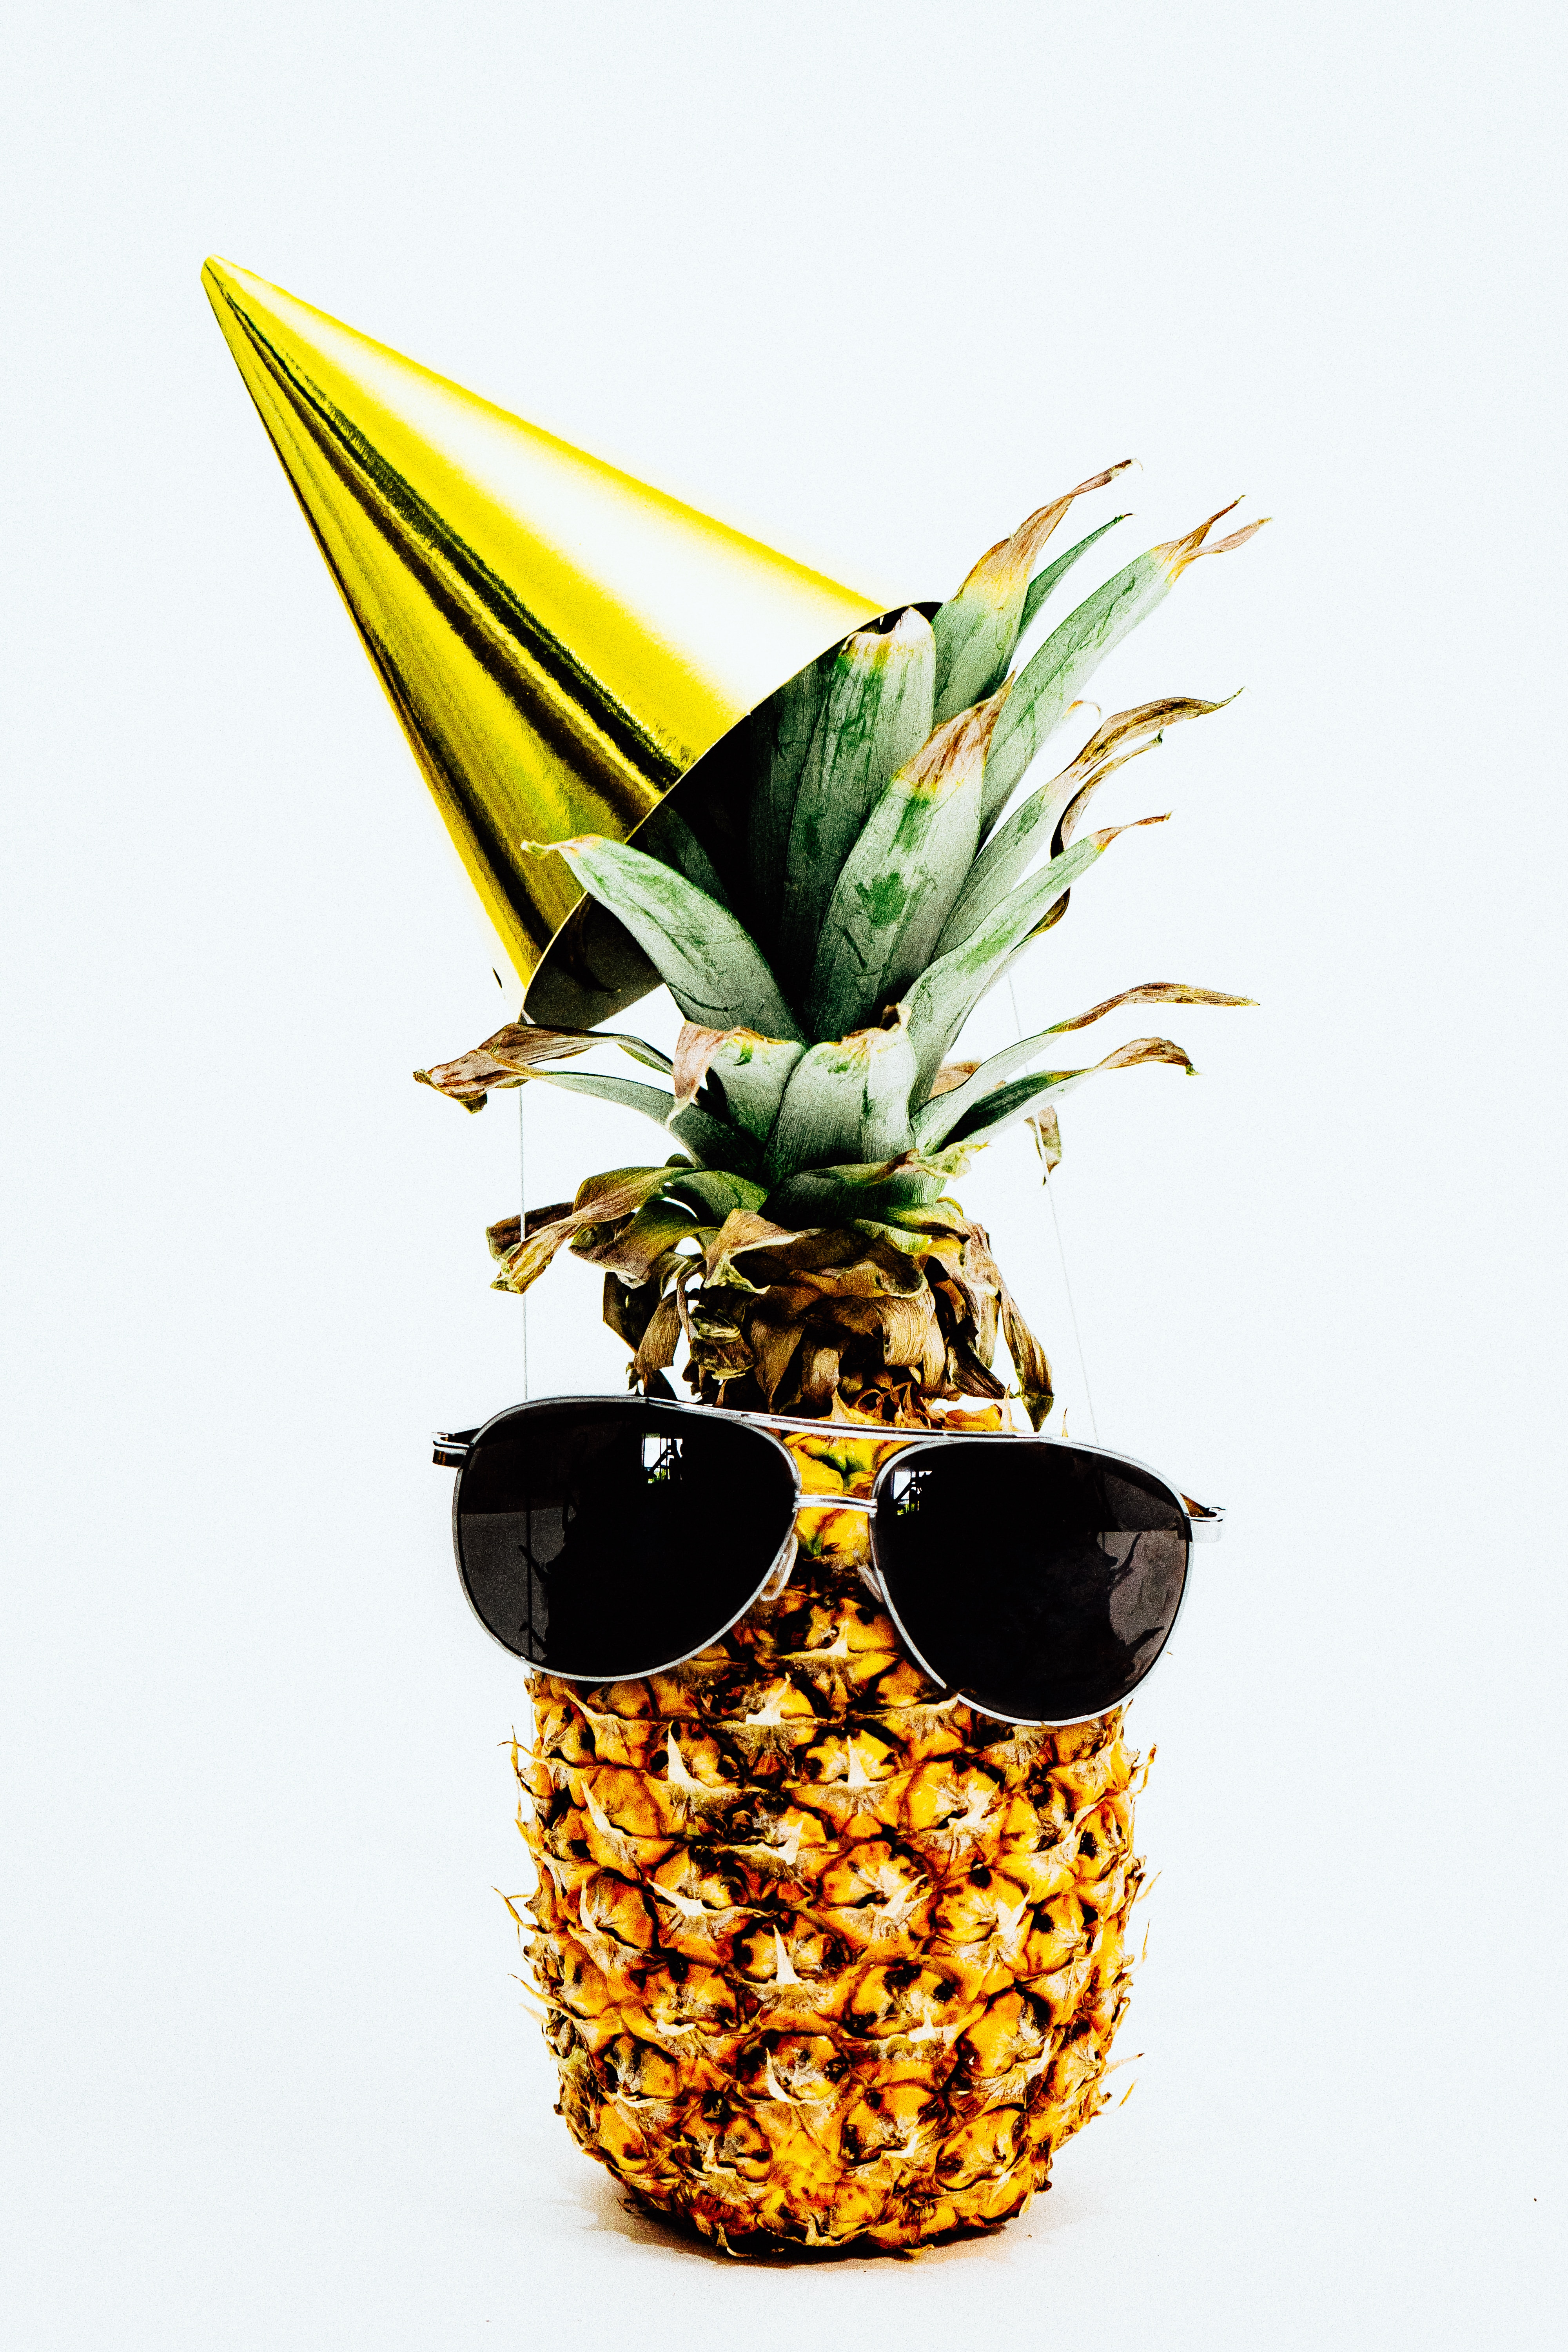 Pineapple wearing shades and a party hat